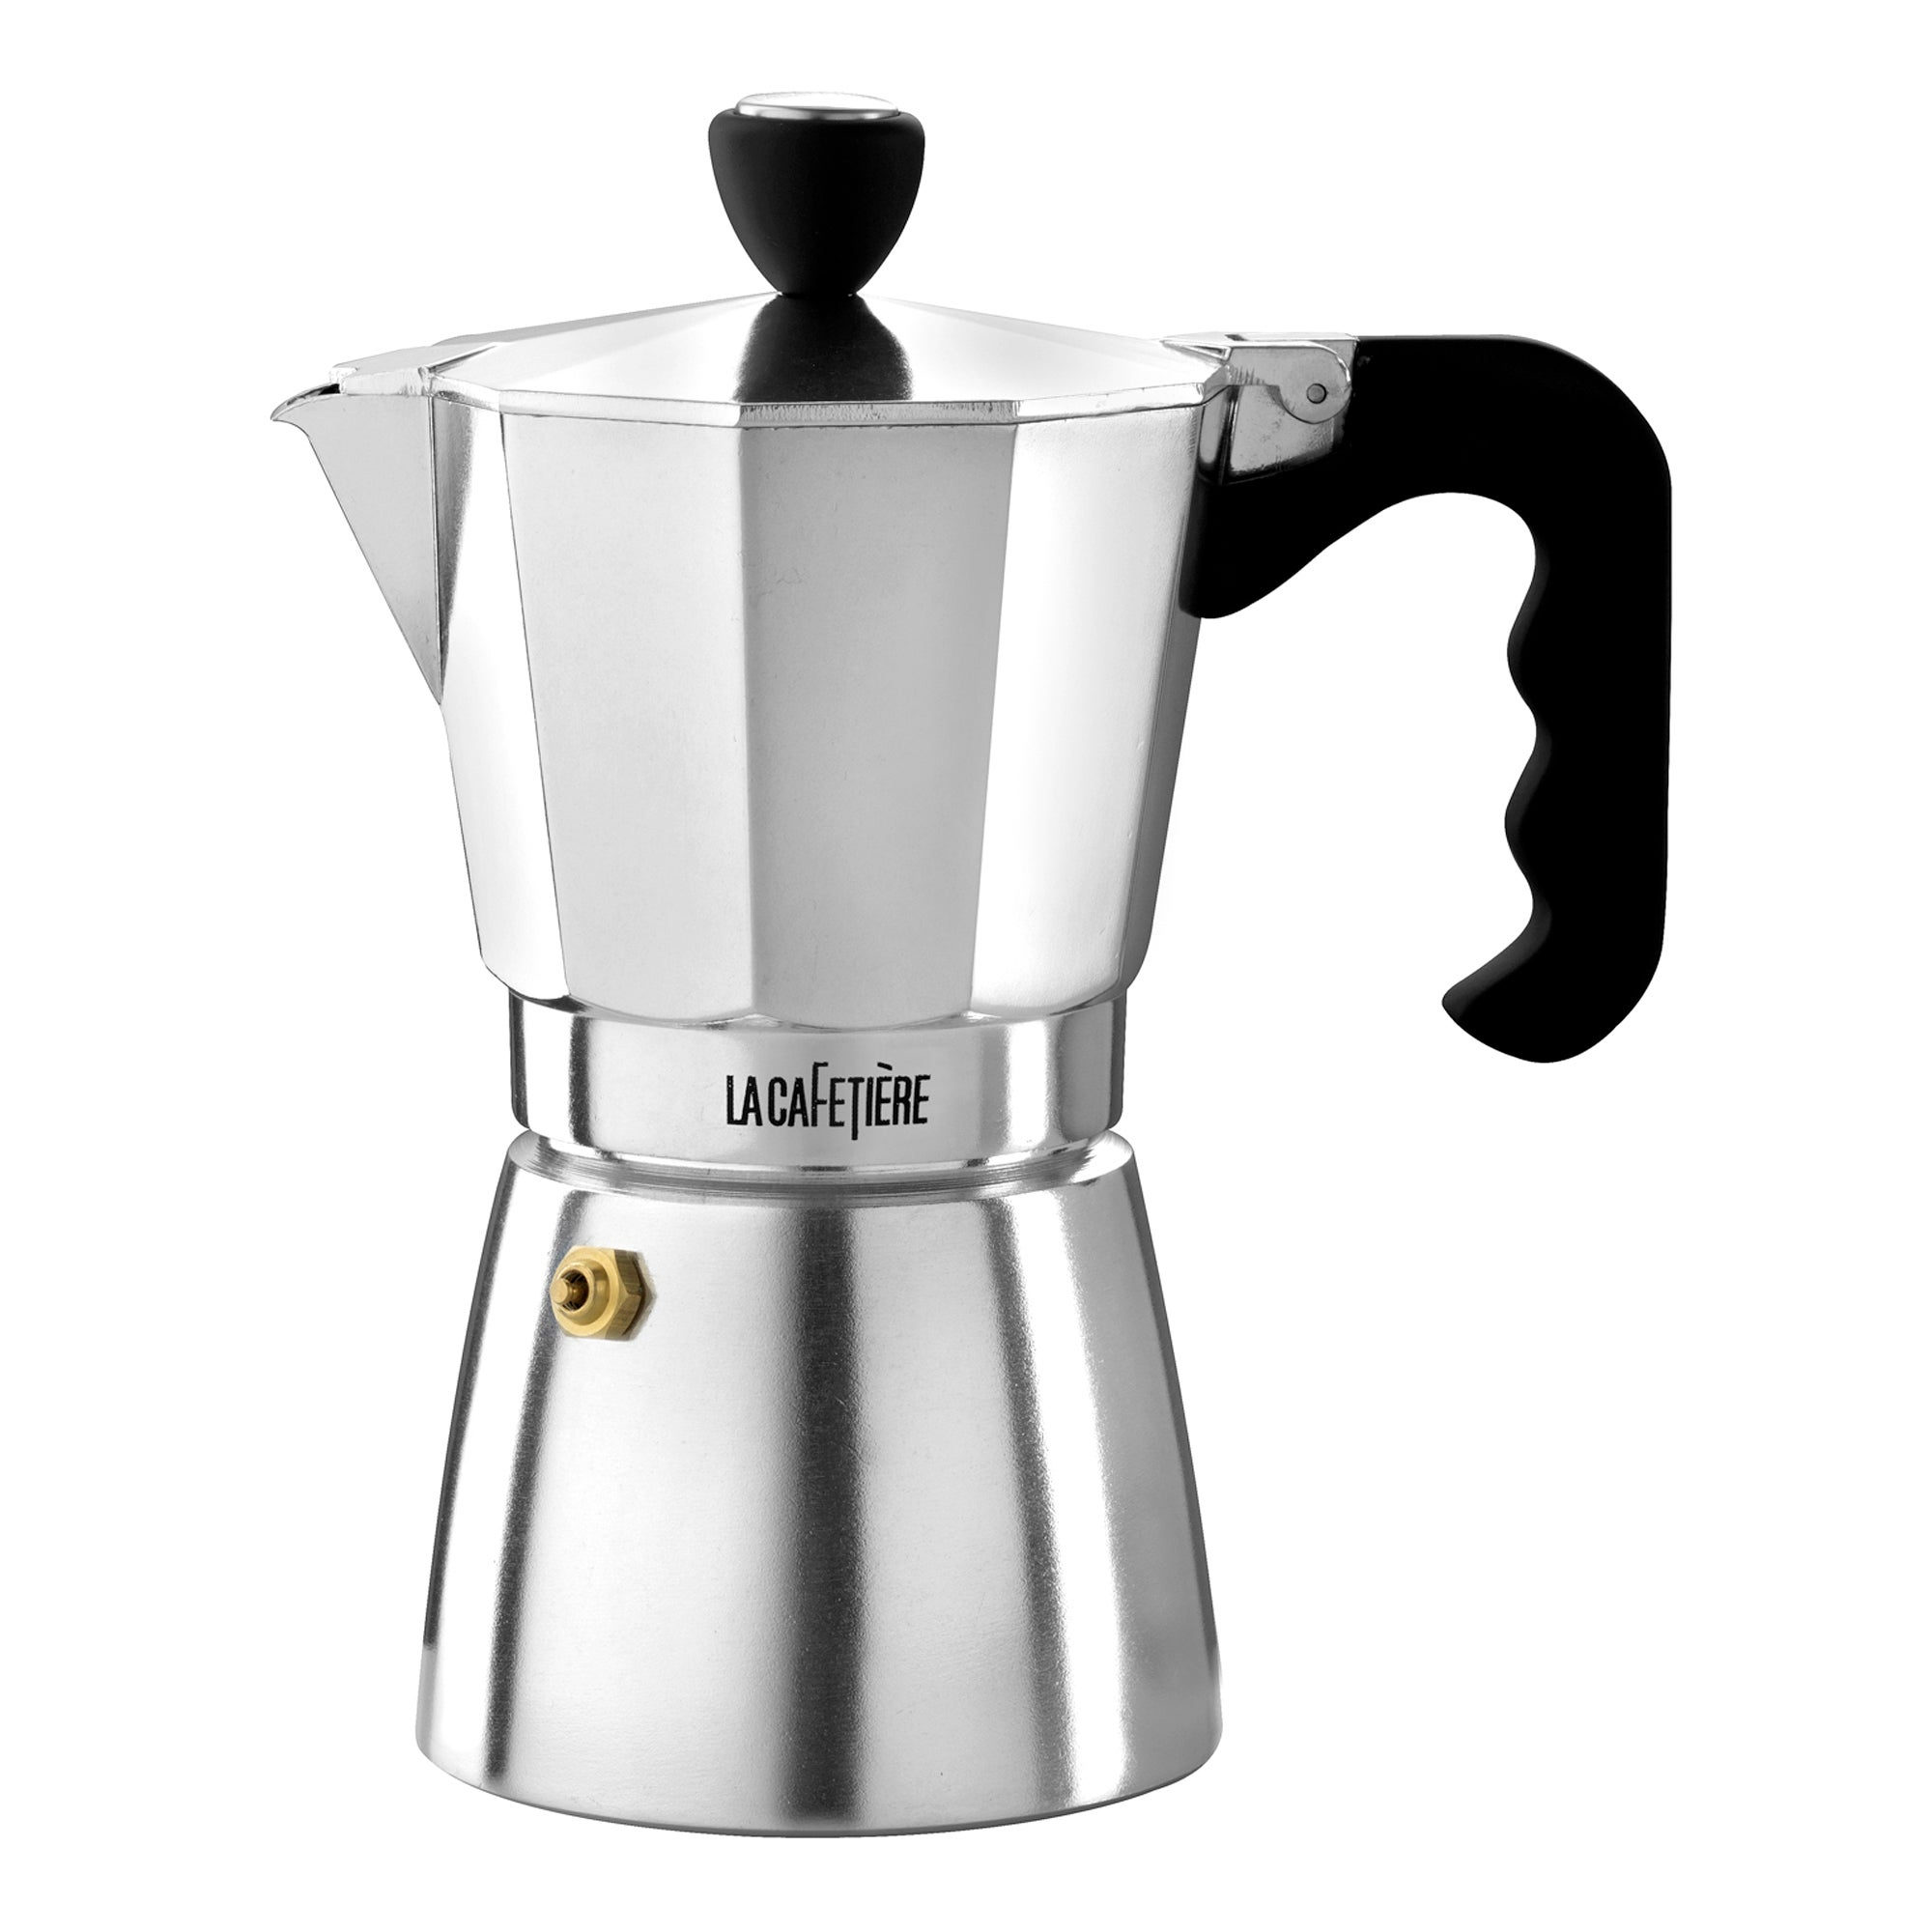 Le Cafetiere Silver 6 Cup Stove Top Coffee Maker